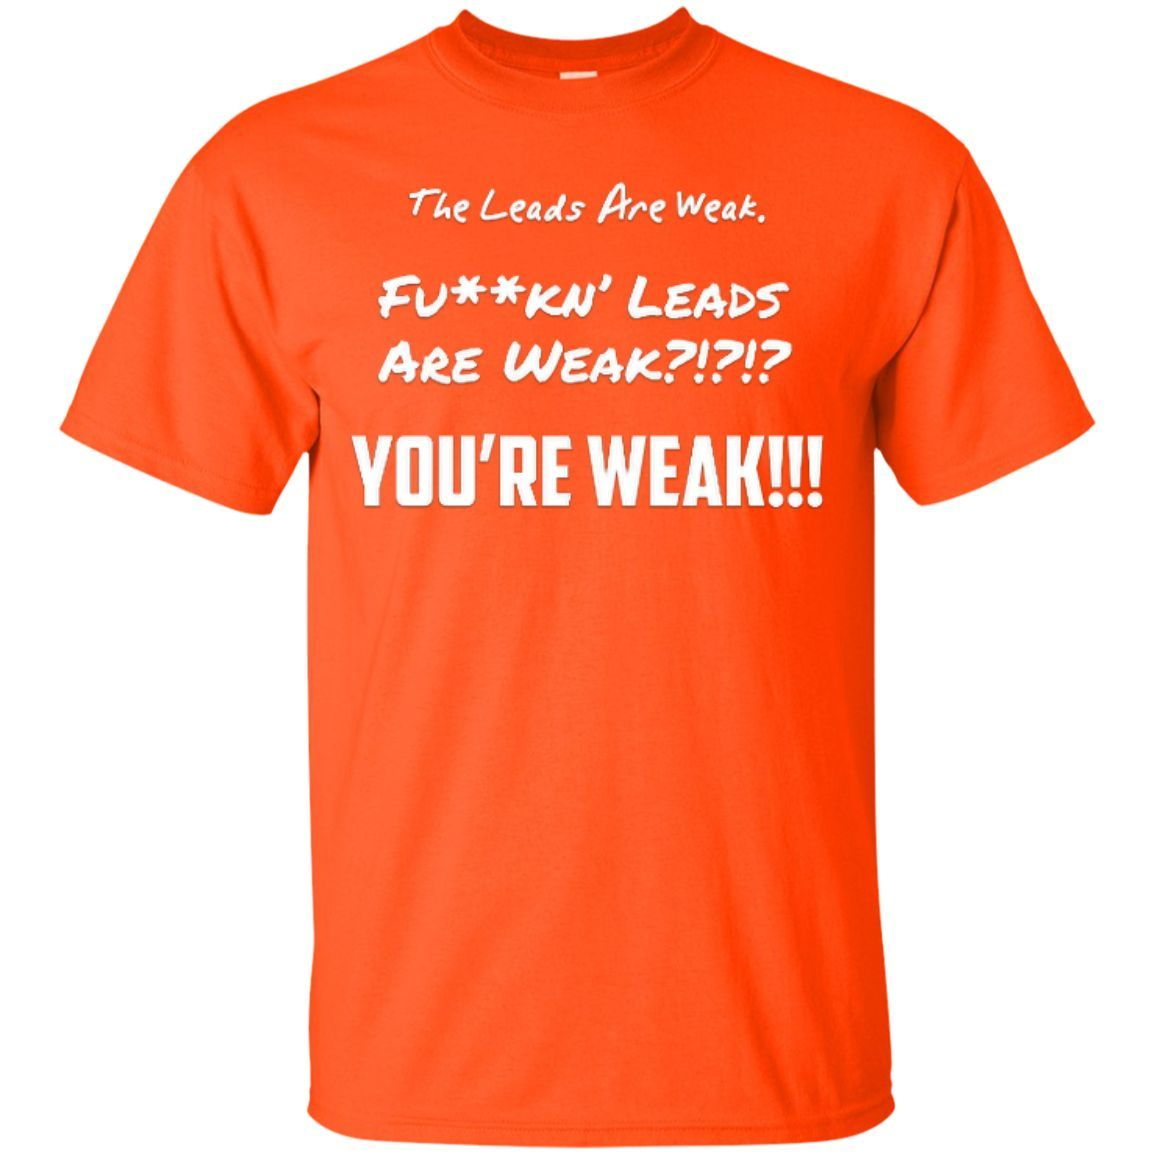 The Leads Are Weak Custom Ultra Cotton T Shirt Cotton Digital